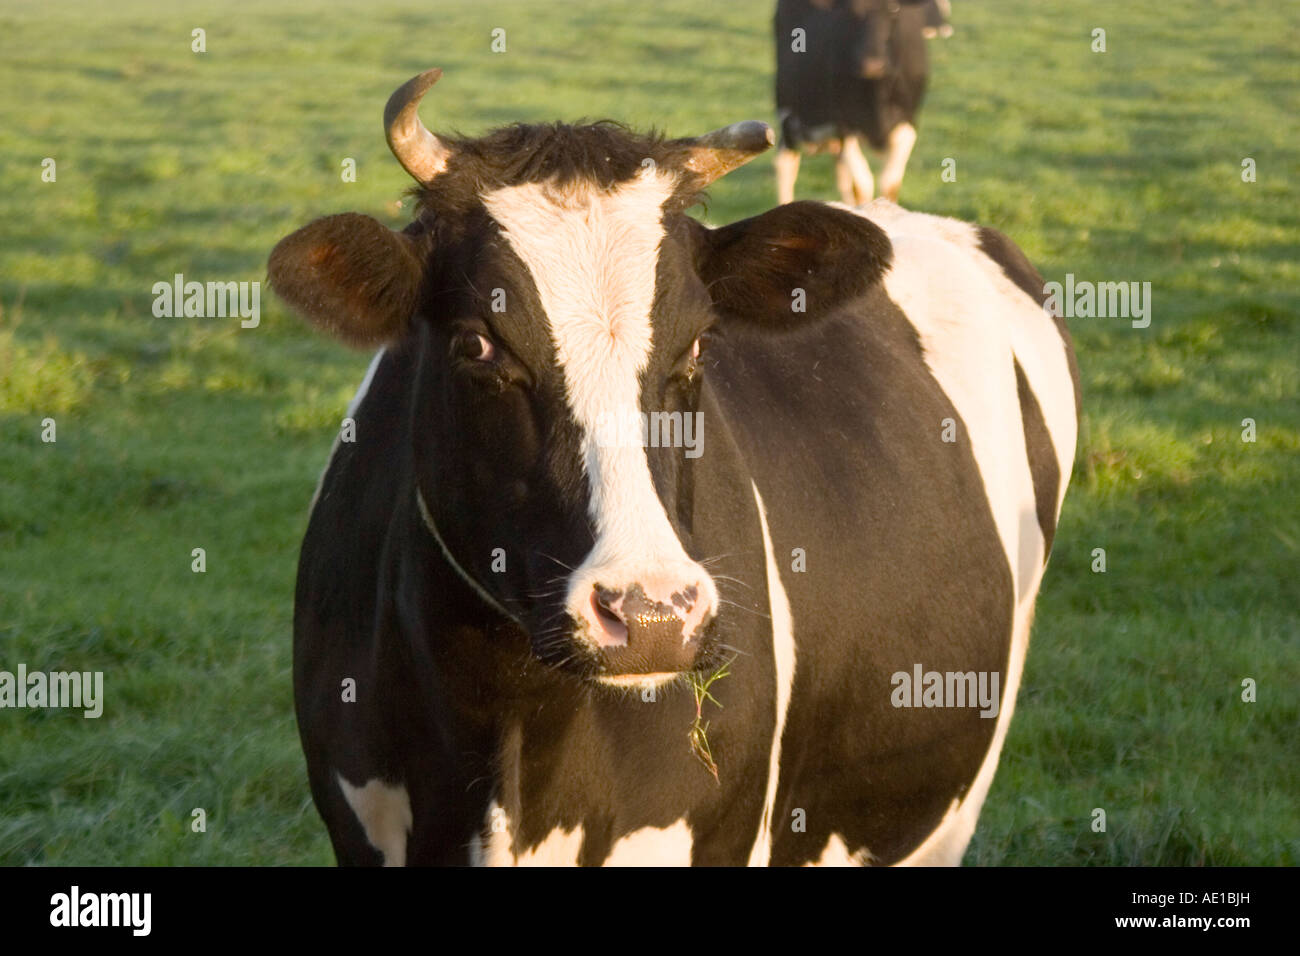 Cheshire Brown White And Black Fresian And Jersey Cows In A Field